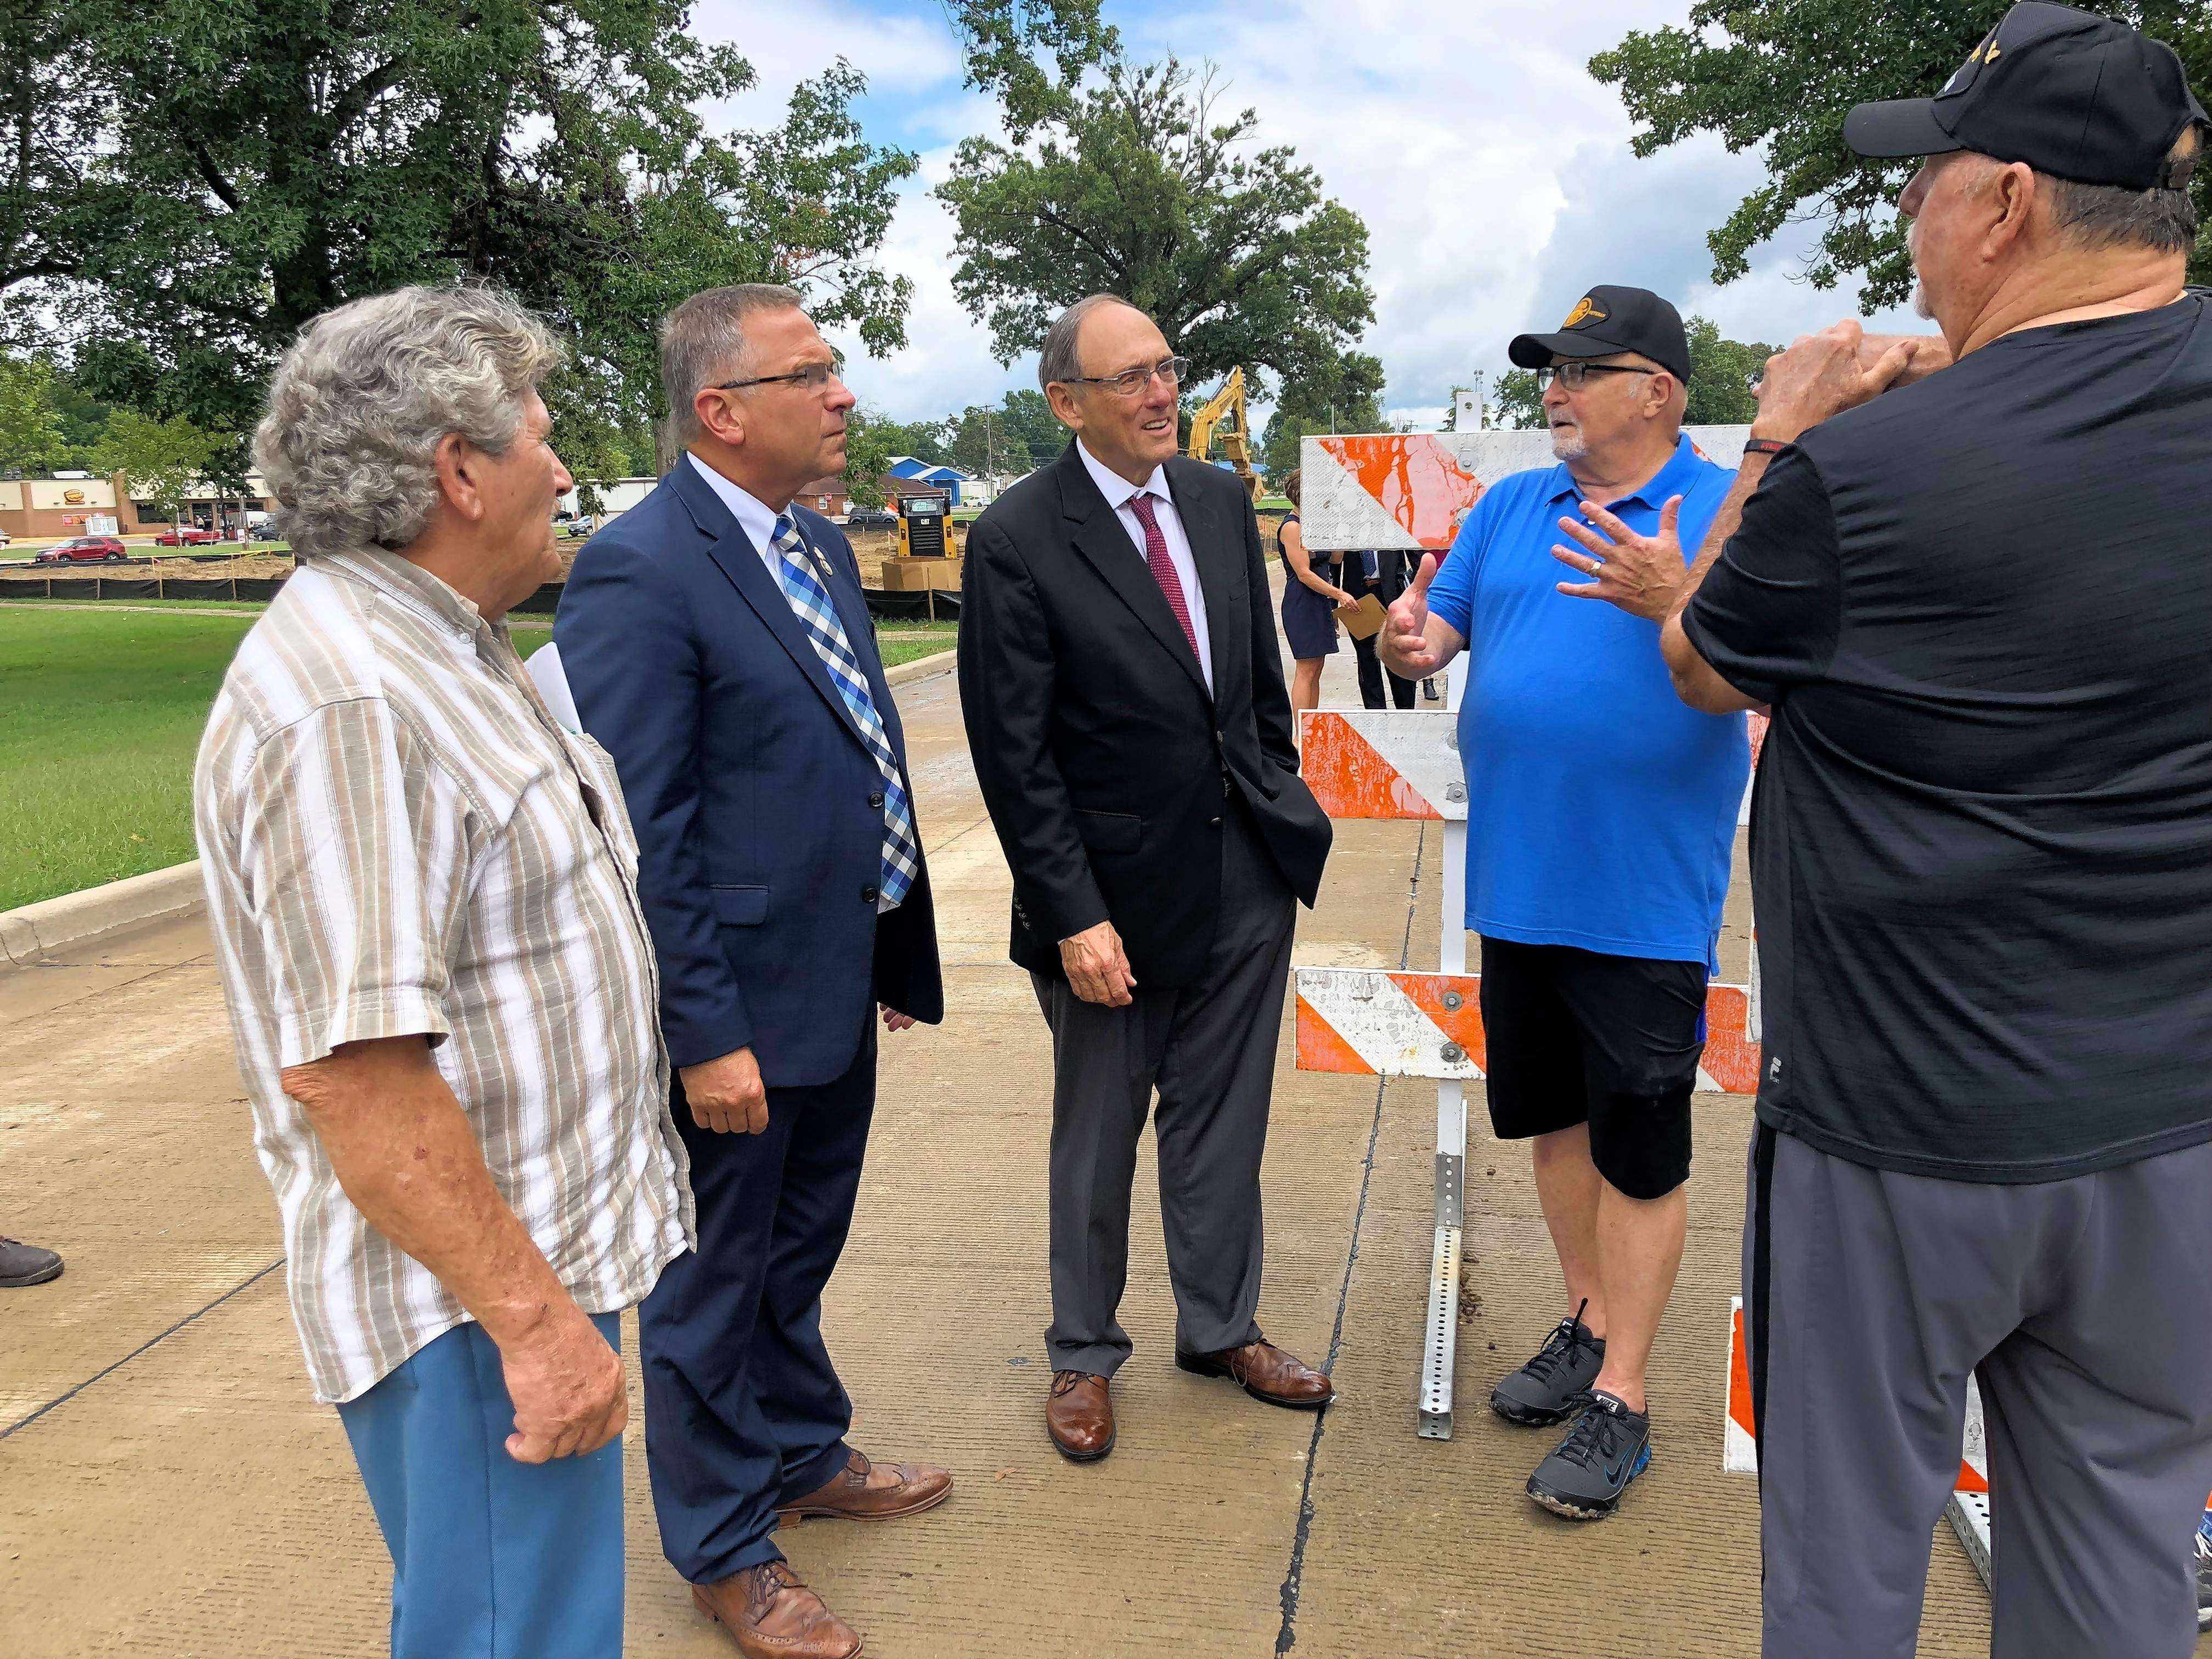 U.S. Reps. Mike Bost and Phil Roe listen to concerns raised by members of Point Man Watchdog on the grounds of the Marion VAMC. From left are Leonard Willis, Bost, Roe, Rocky Morris and Dink Broy.